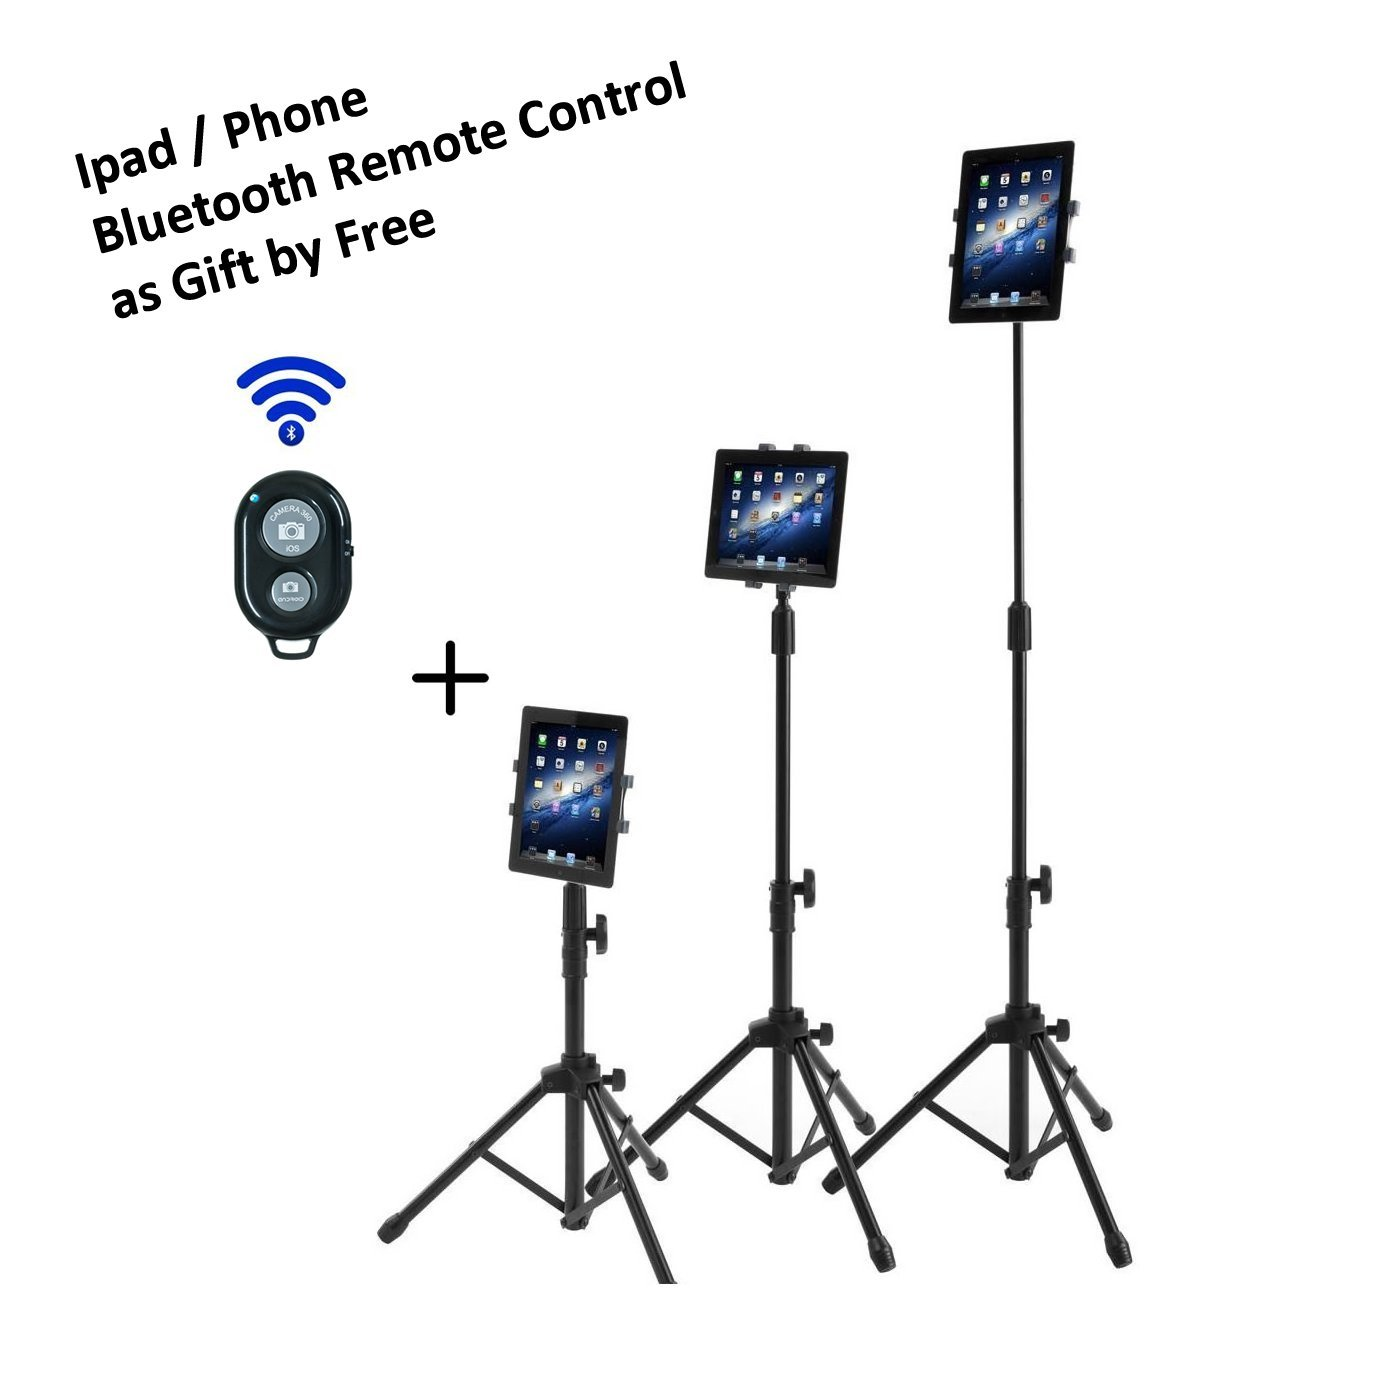 Ipad Tripod Mount Floor Stand, Vstyle Height Adjustable 20 to 60 Inch Tablet Tripod Stand Mount For Ipad ,Ipad Mini and Others Within 7-10 Inch (Classic Tripod+Bluetooth Remote Control) by VSTYLE